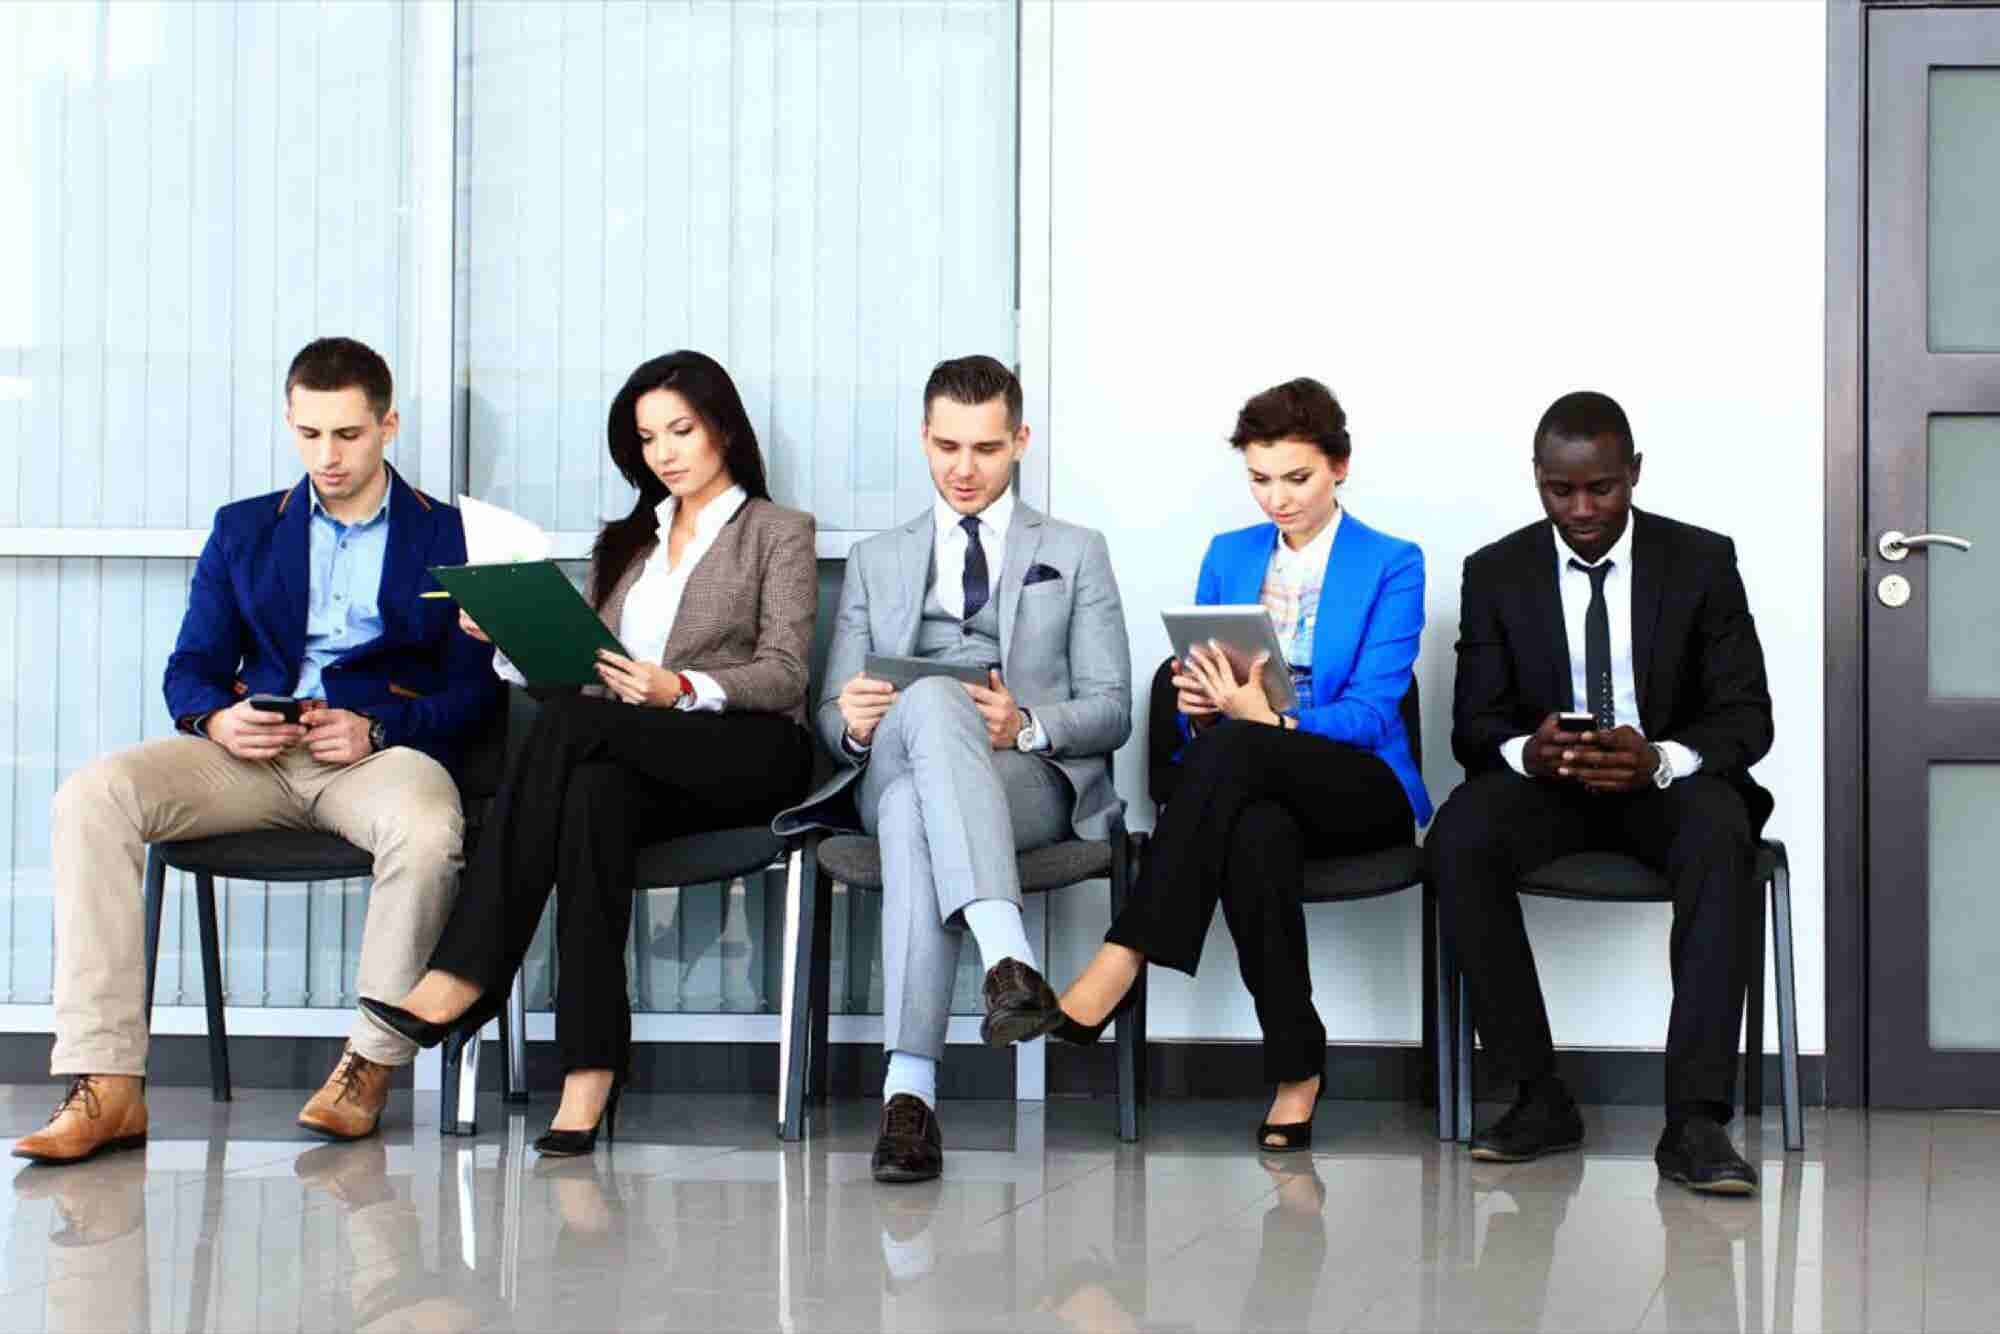 10 Reasons to Hire Overqualified Candidates